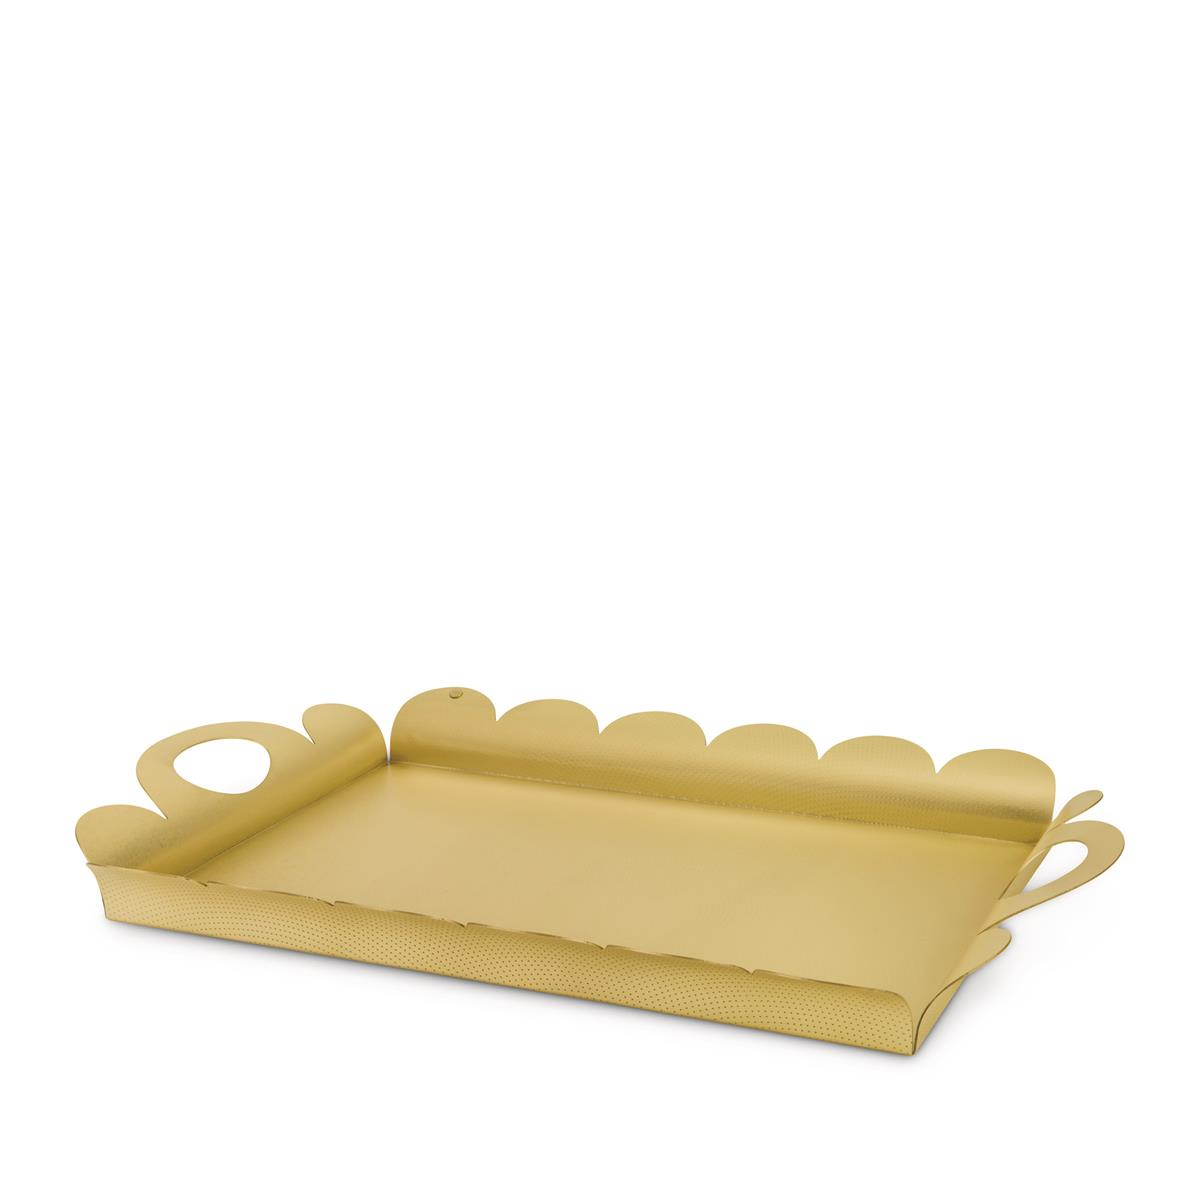 Alessi-Recinto Rectangular tray in 18/10 stainless steel mirror polished